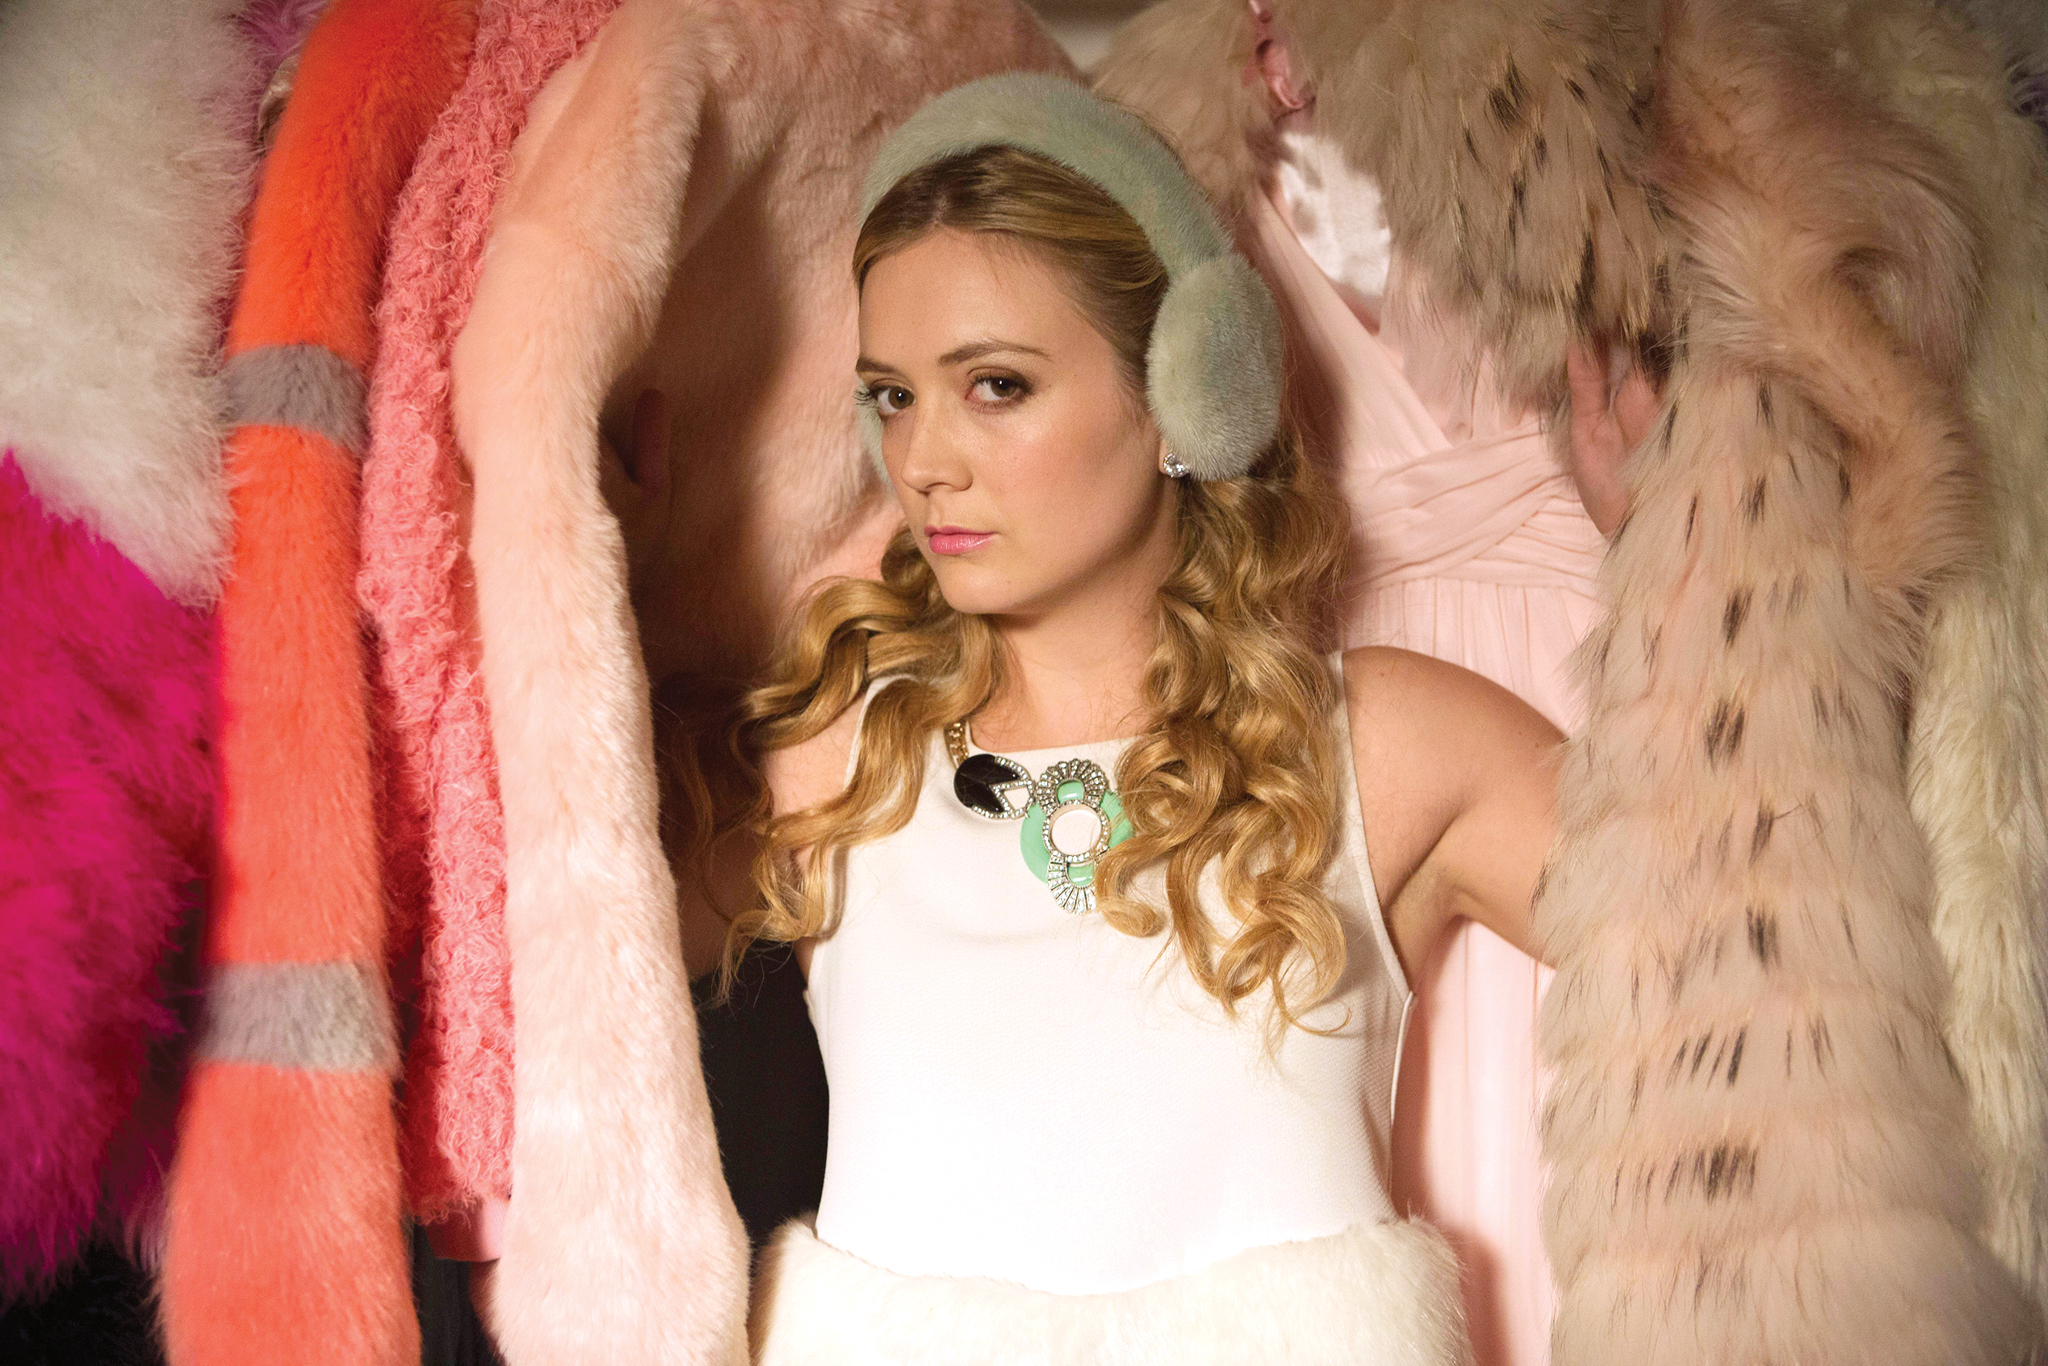 """SCREAM QUEENS: Billie Lourd as Chanel #3 in """"Pilot,"""" the first part of the special, two-hour series premiere of SCREAM QUEENS airing Tuesday, Sept. 22 (8:00-10:00 PM ET/PT) on FOX. ©2015 Fox Broadcasting Co. Cr: Steve Dietl/FOX."""